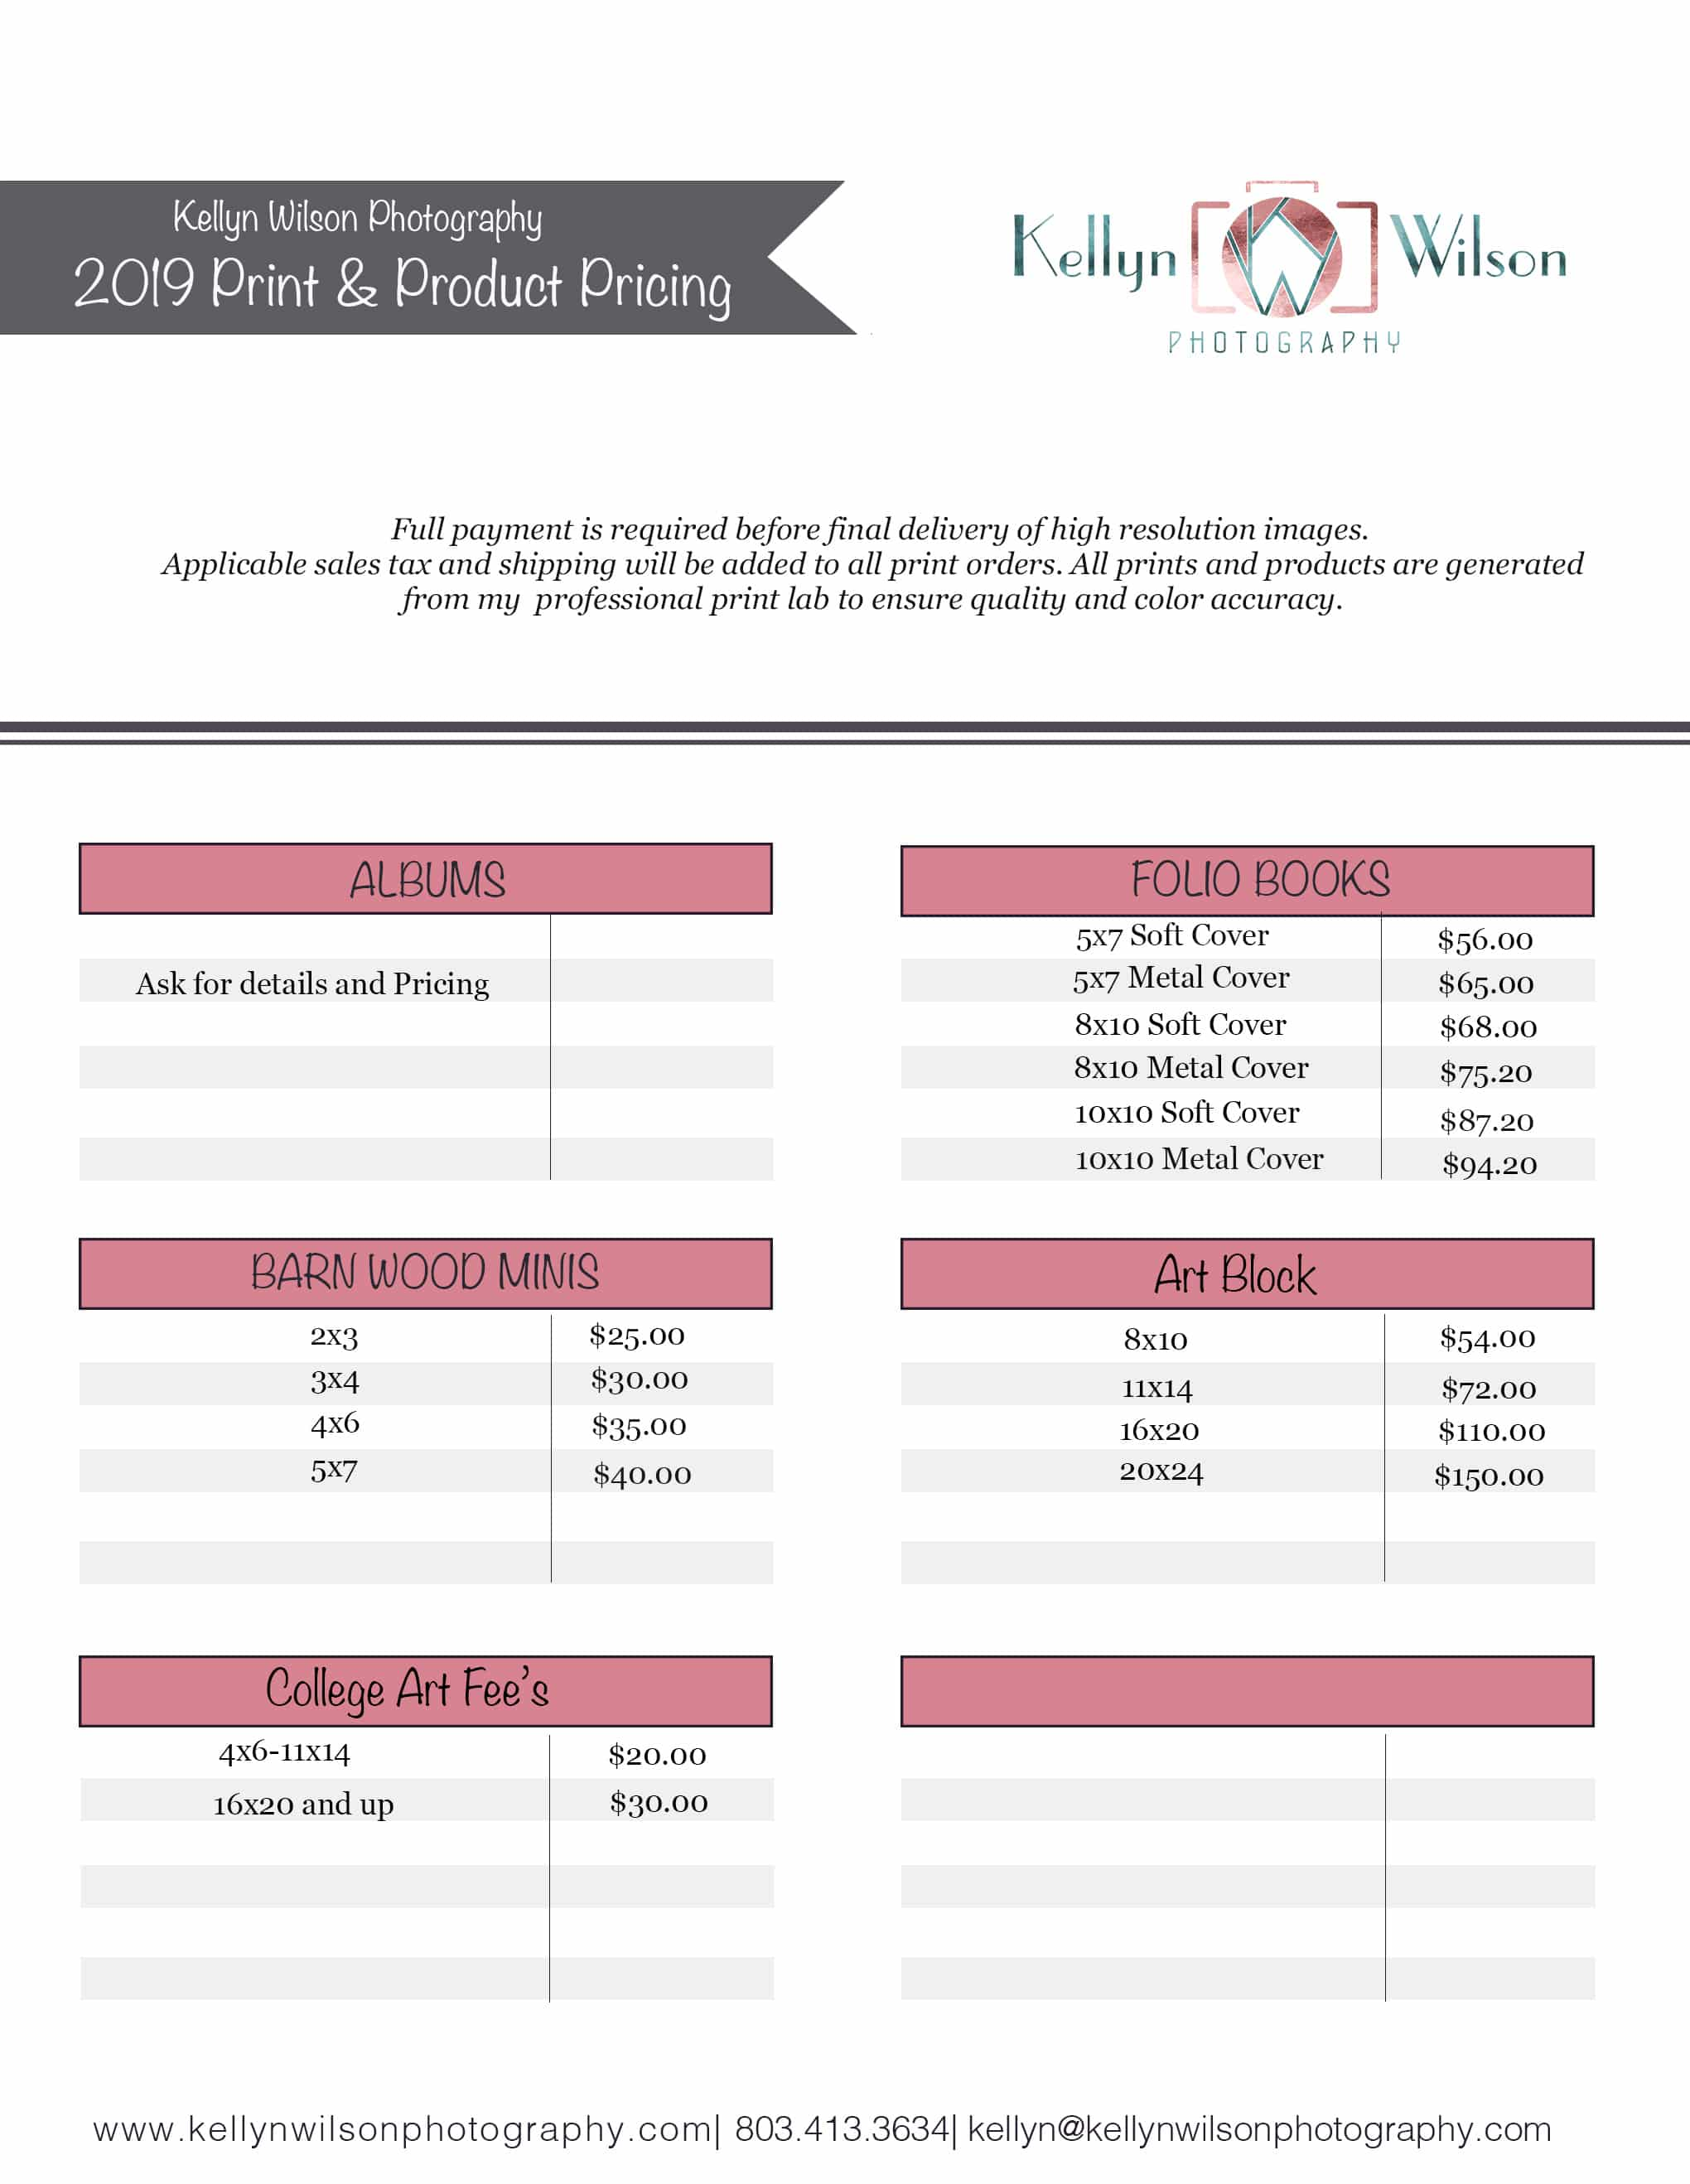 Kellyn Wilson Photography Print and Product Pricing